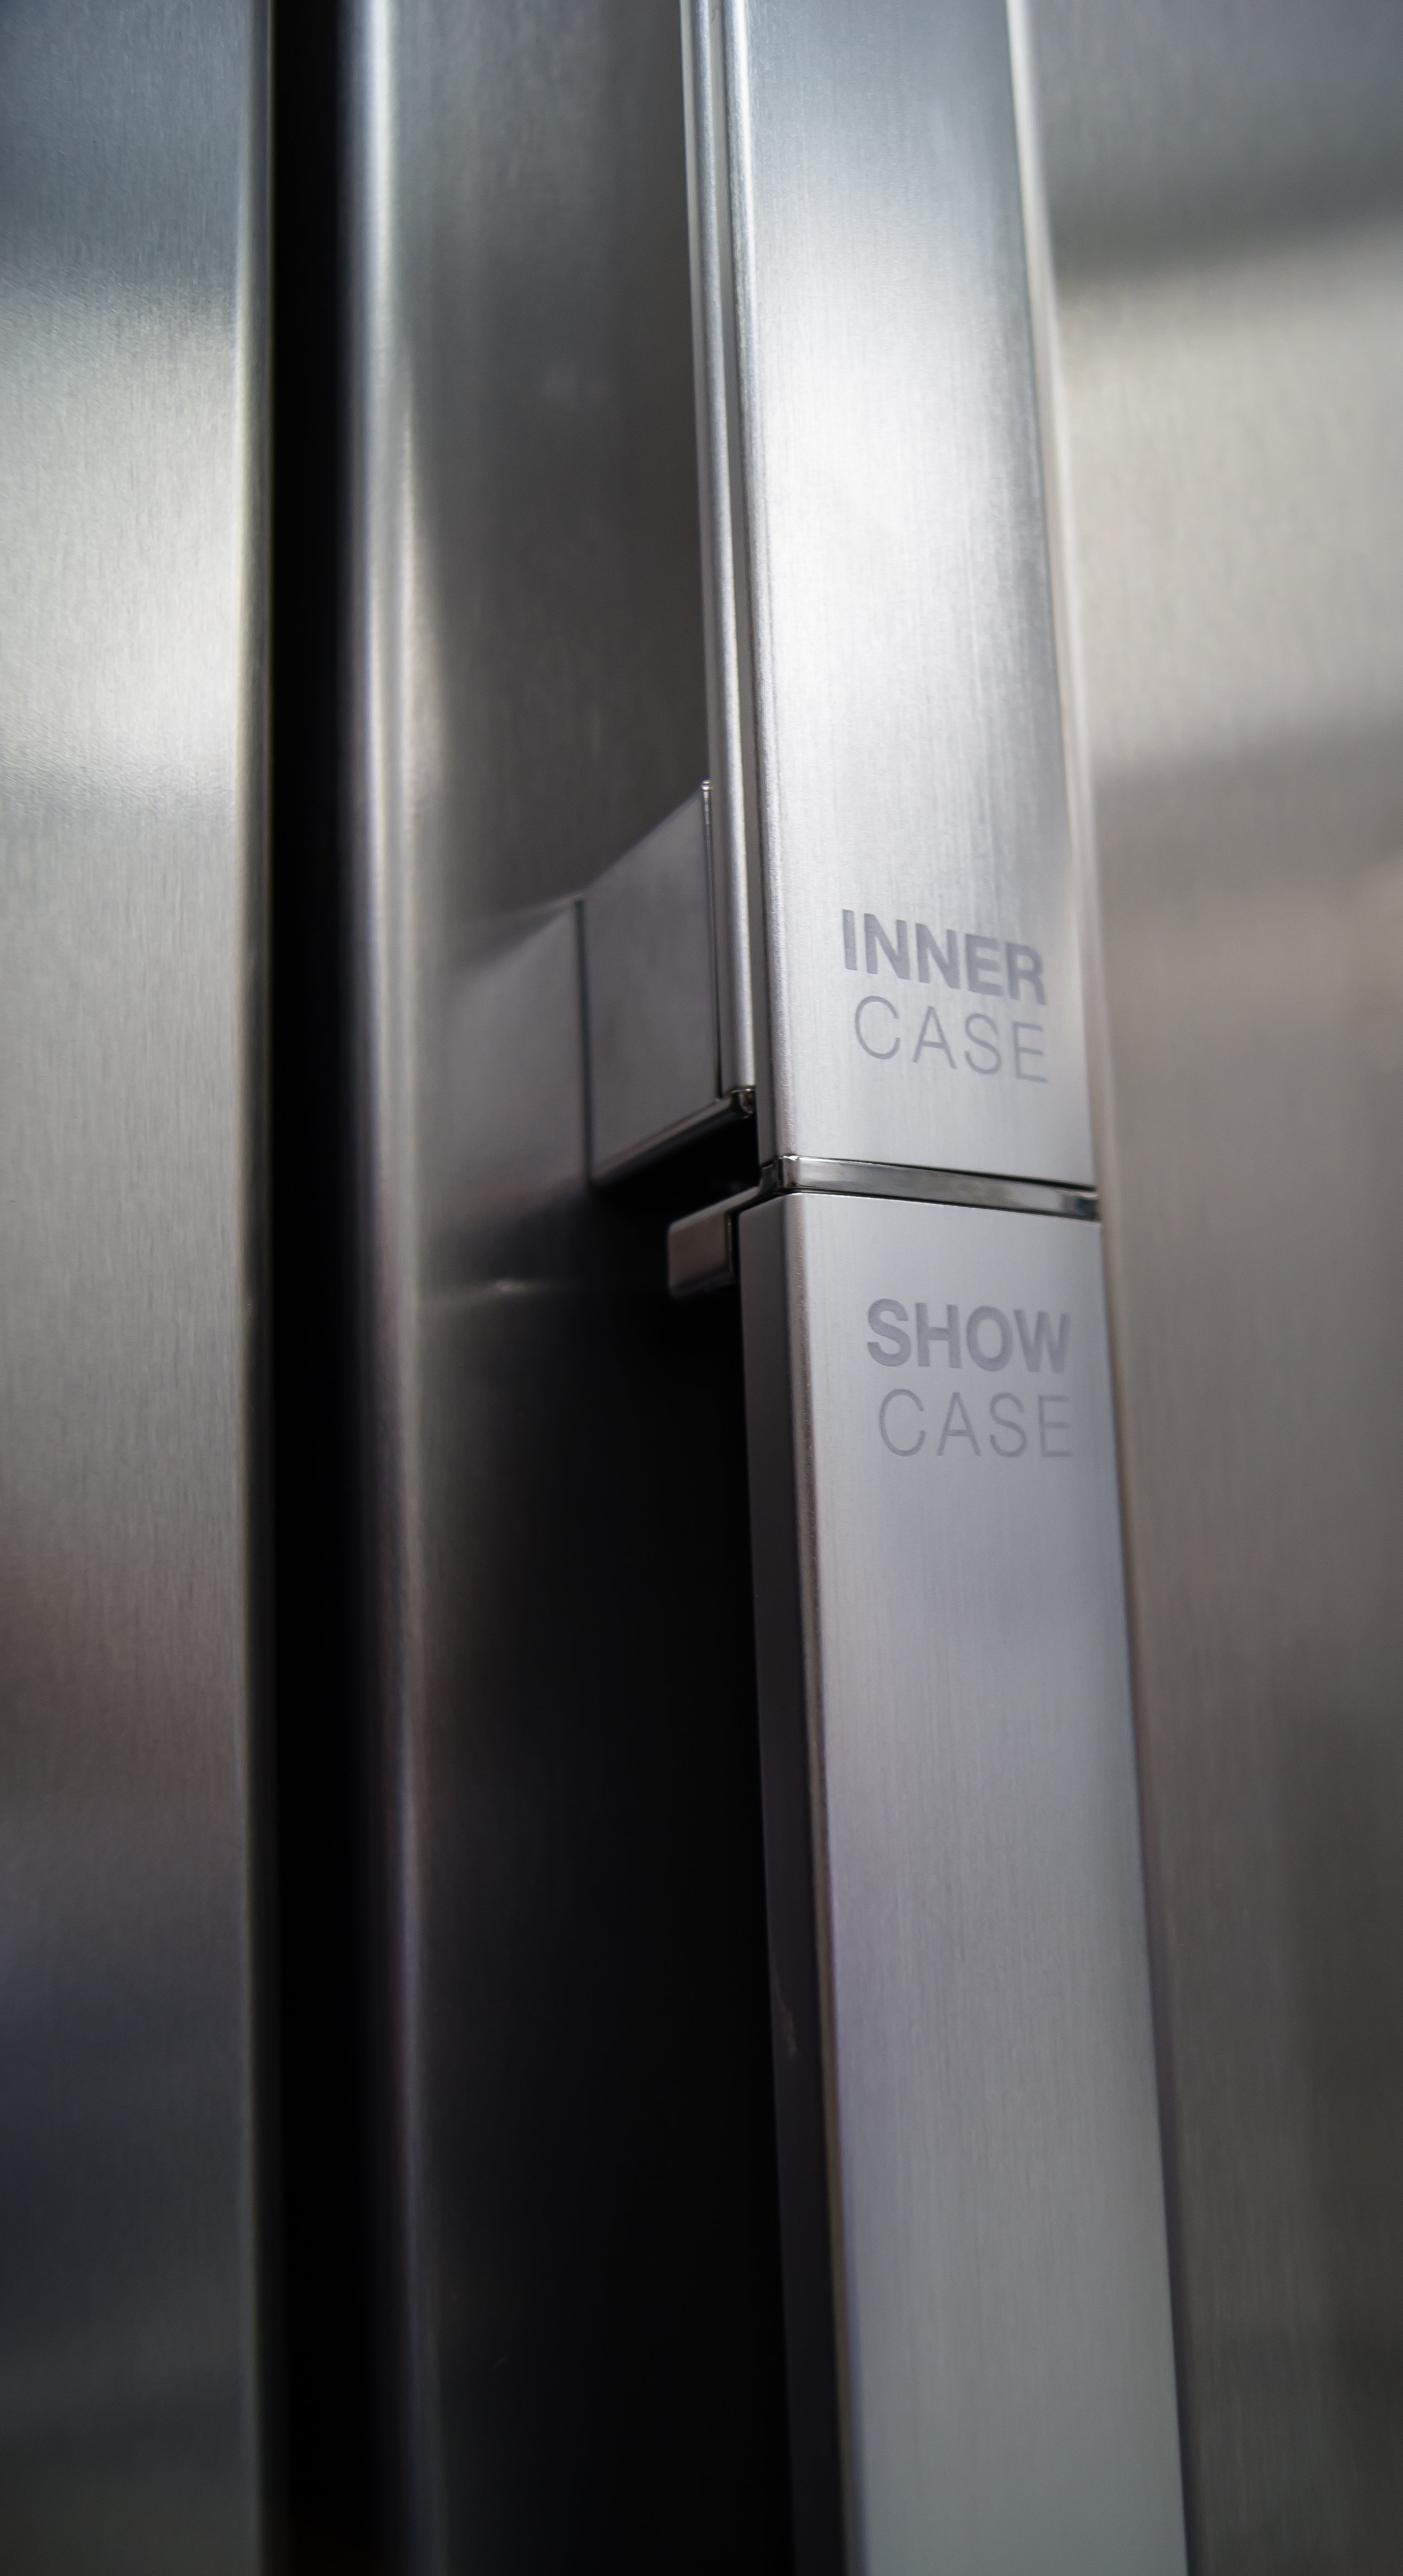 The Samsung RH29H9000SR Food Showcaseu0027s Fridge Door Handle Is Divided Into  An Upper And Lower Section